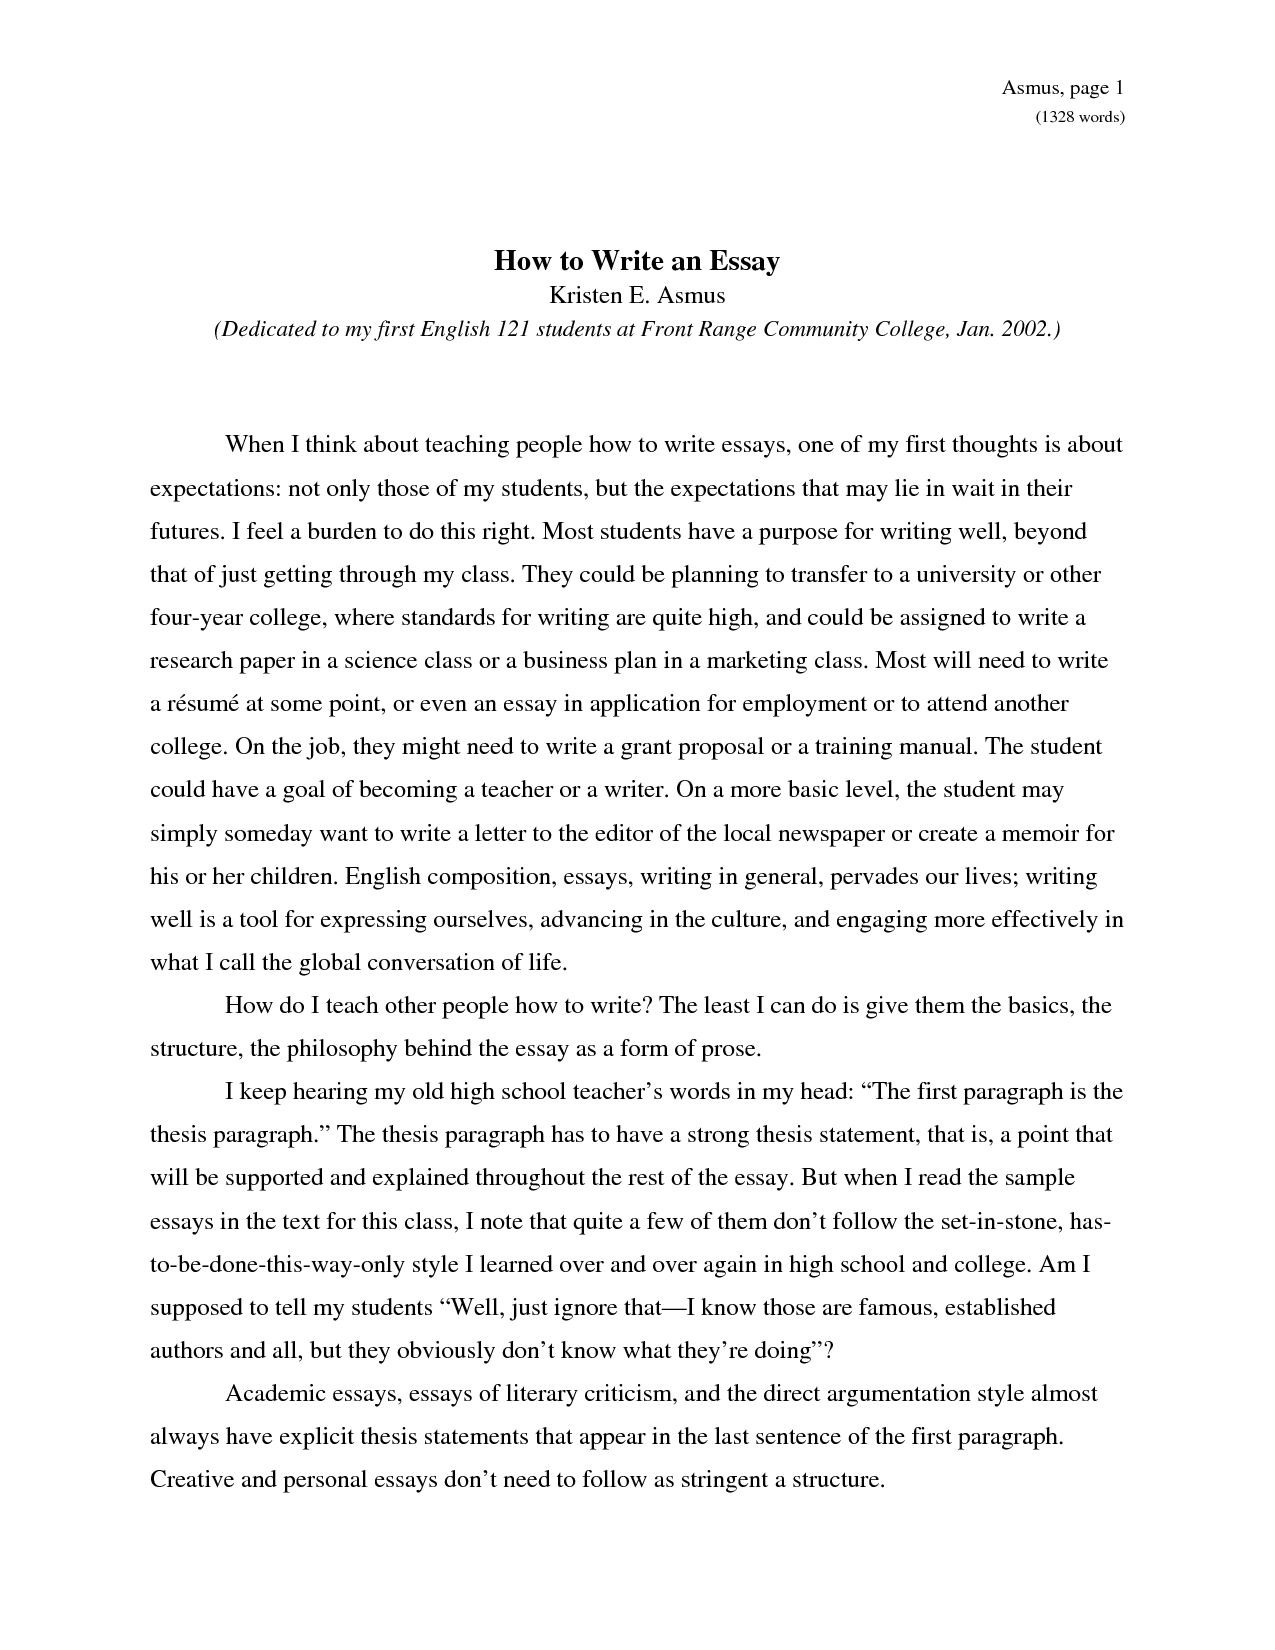 quotations on essay writing Find stephen king quotes on writing, ernest hemingway quotes on writing, and creative writing quotes from other famous authors such as mark twain, william shakespeare, and henry david thoreau amongst other famous writer quotes.